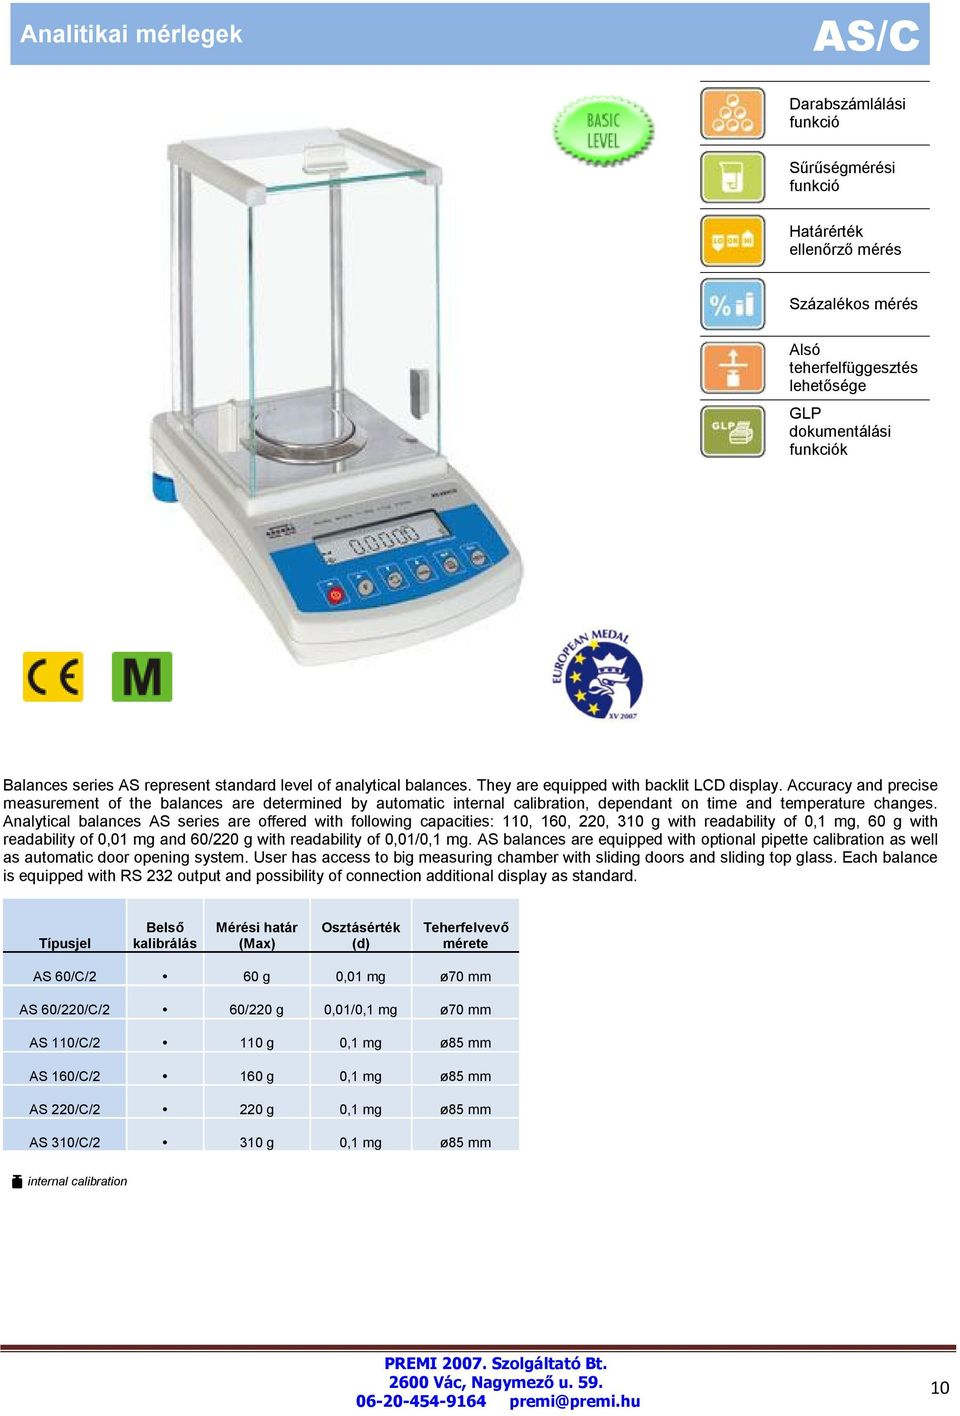 Analytical balances AS series are offered with following capacities: 110, 160, 220, 310 g with readability of 0,1 mg, 60 g with readability of 0,01 mg and 60/220 g with readability of 0,01/0,1 mg.